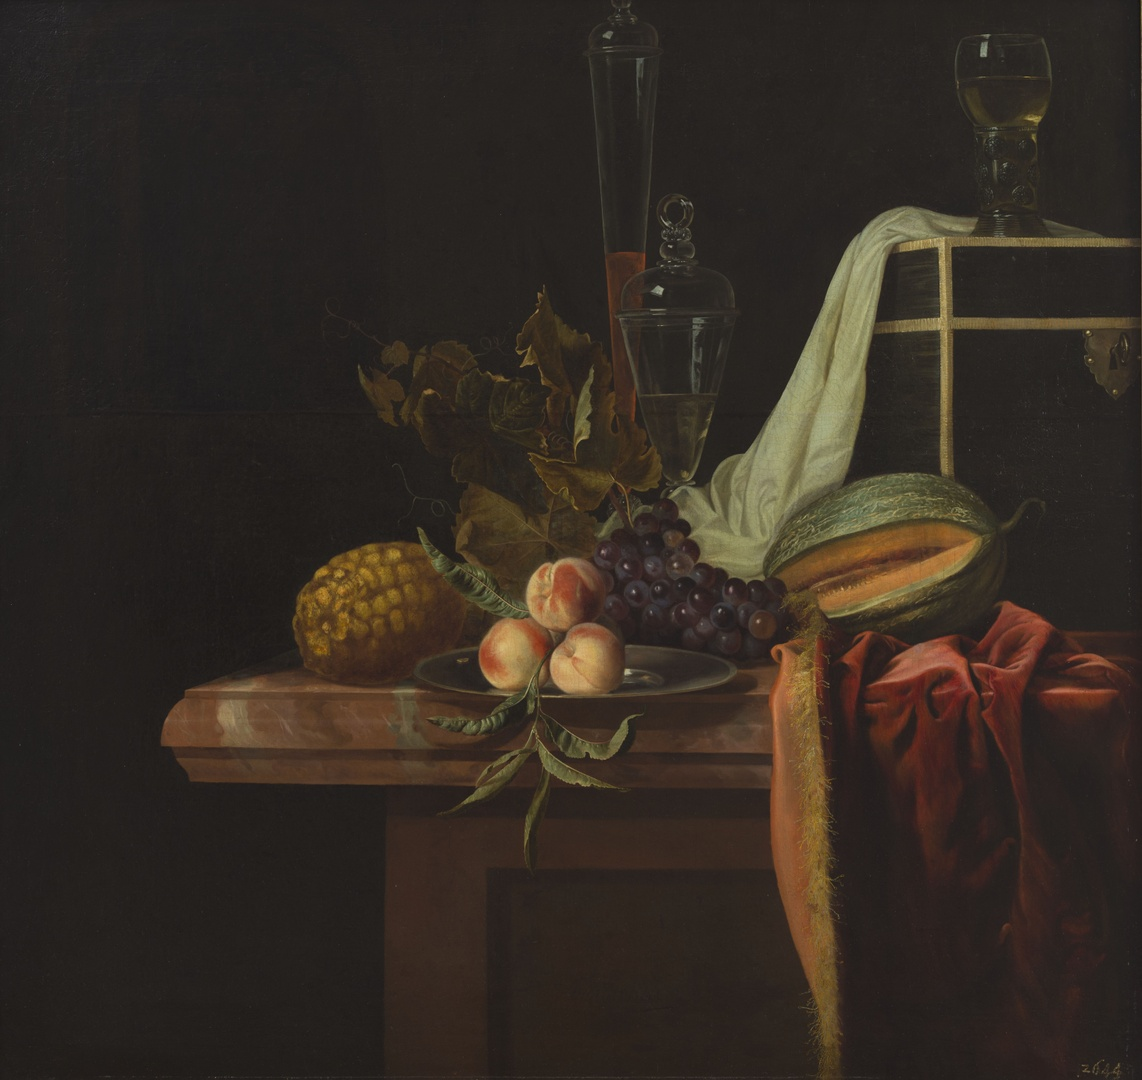 Still life with Fruit and Glass